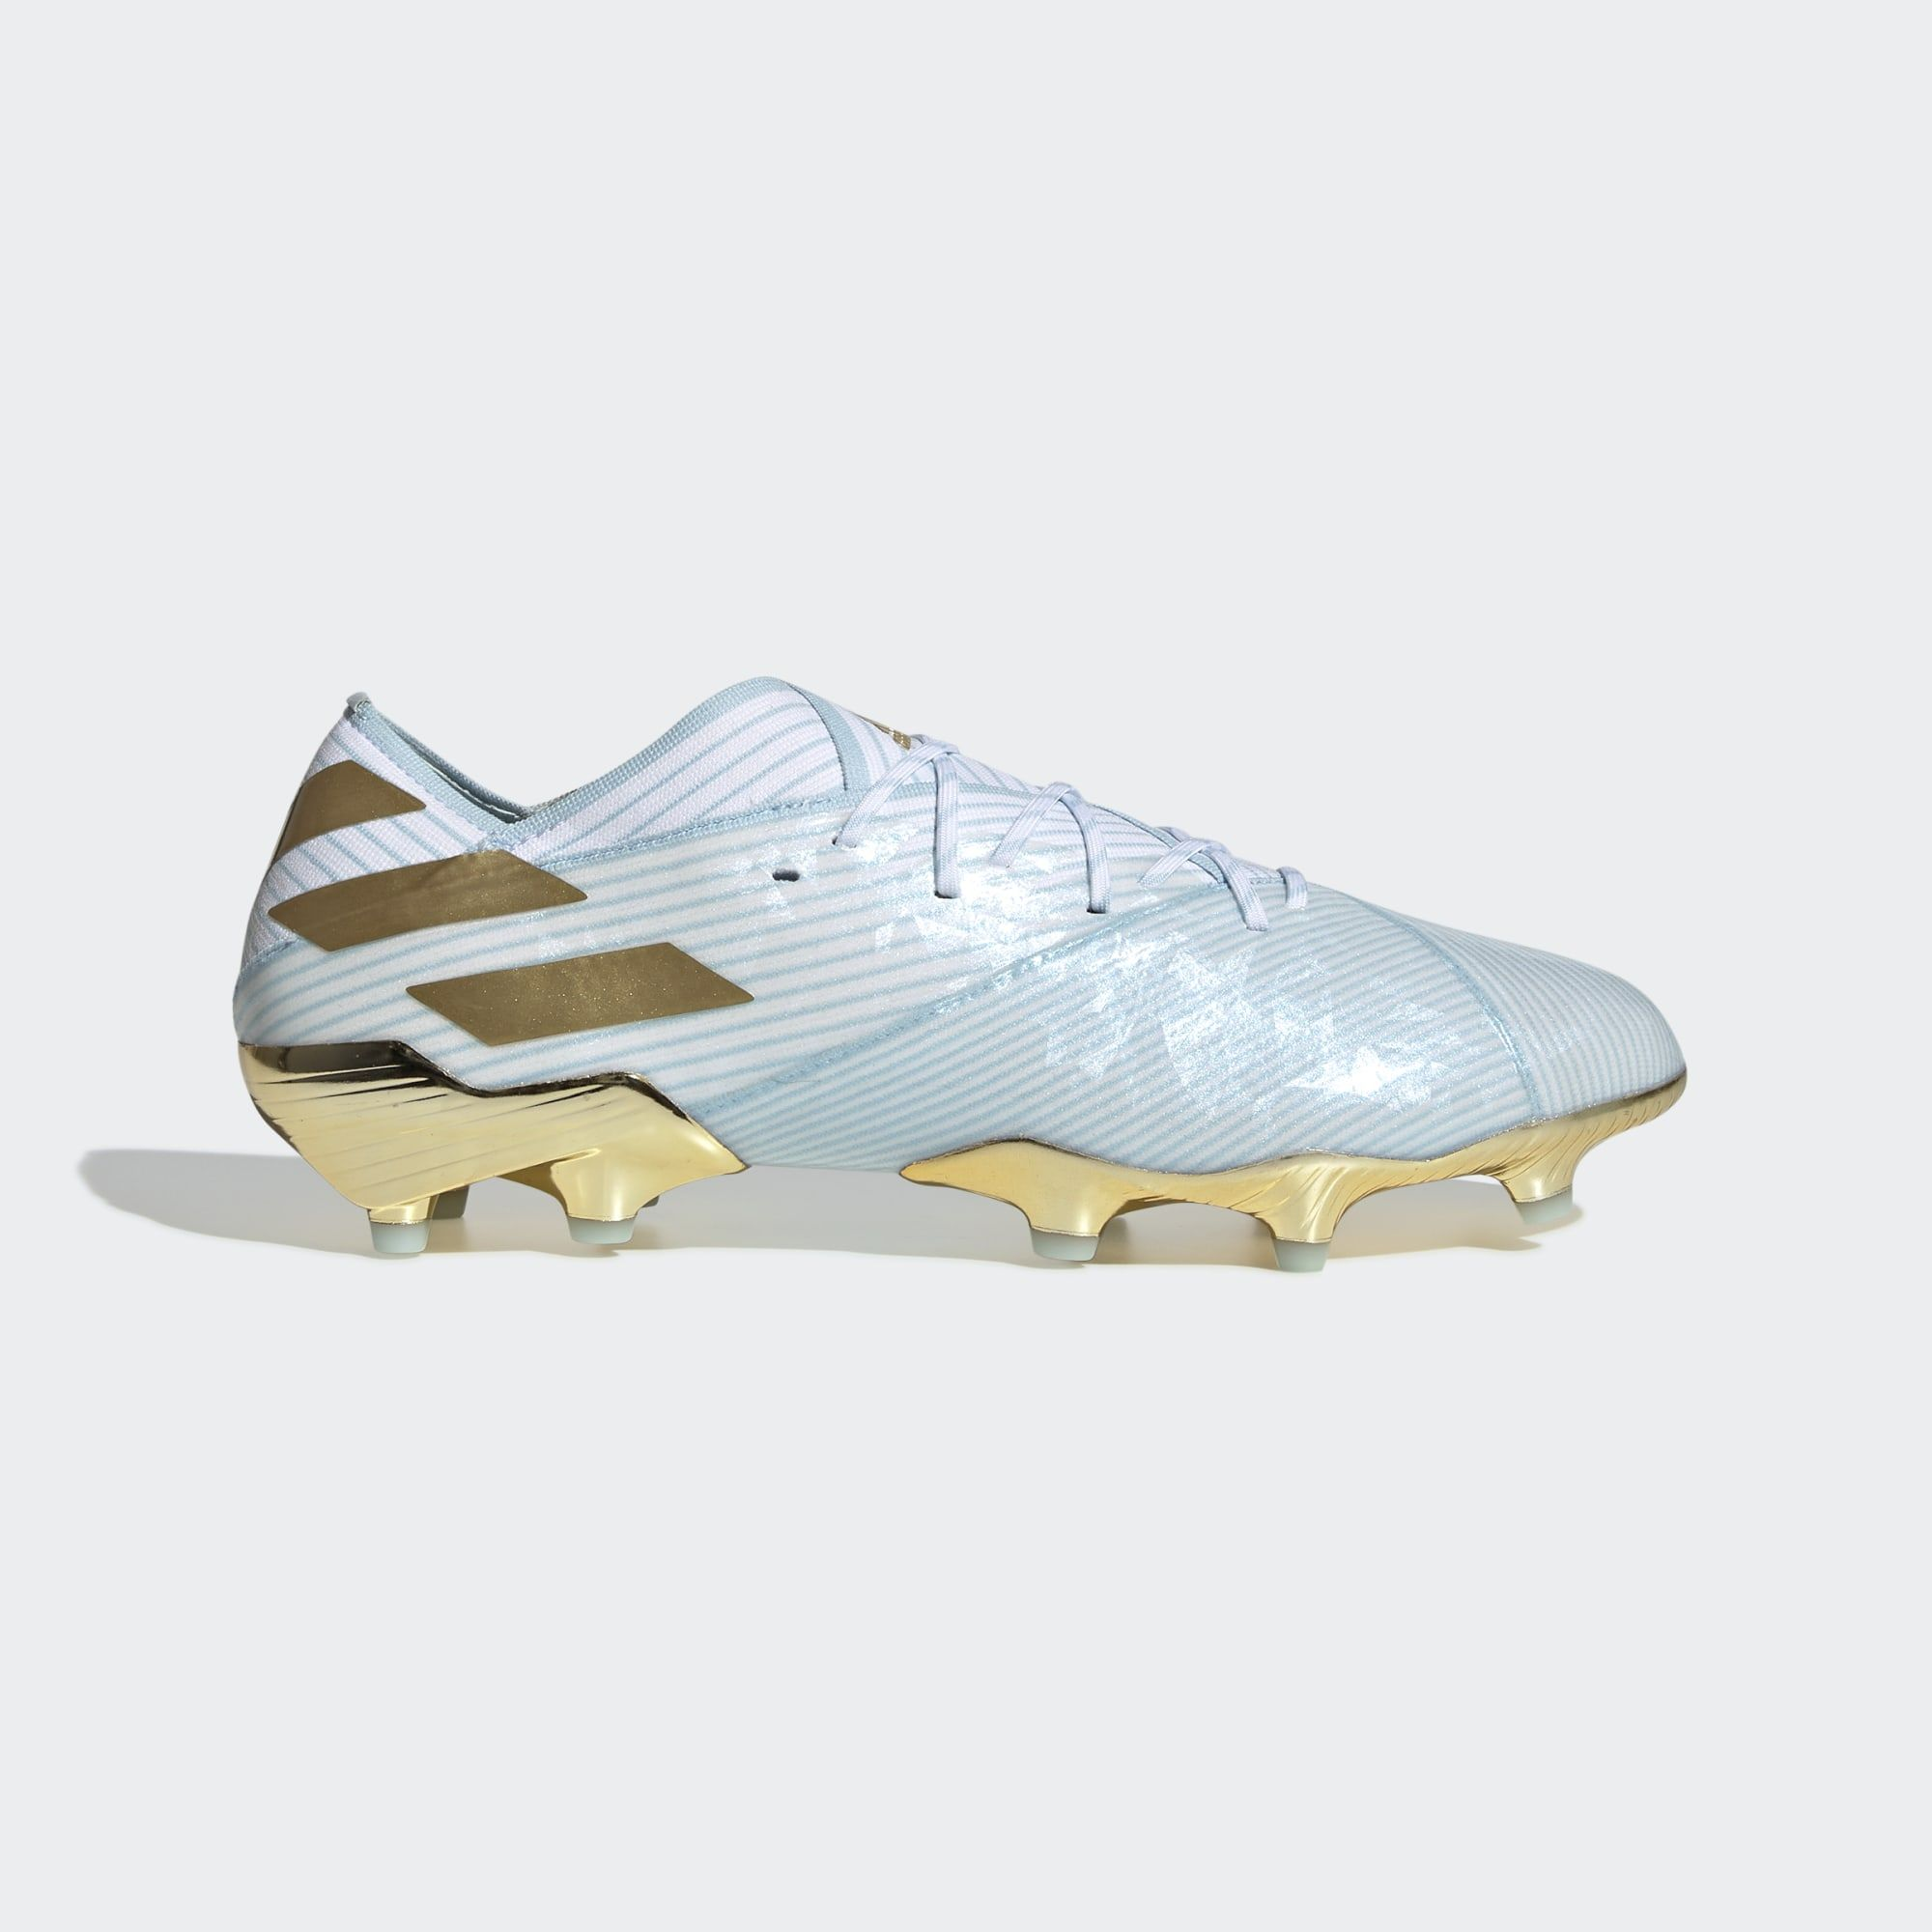 Adidas Nemeziz Messi 19 1 15 Year Fg Bold Aqua Gold Met Cloud White Soccer Cleats Adidas Soccer Cleats Football Boots